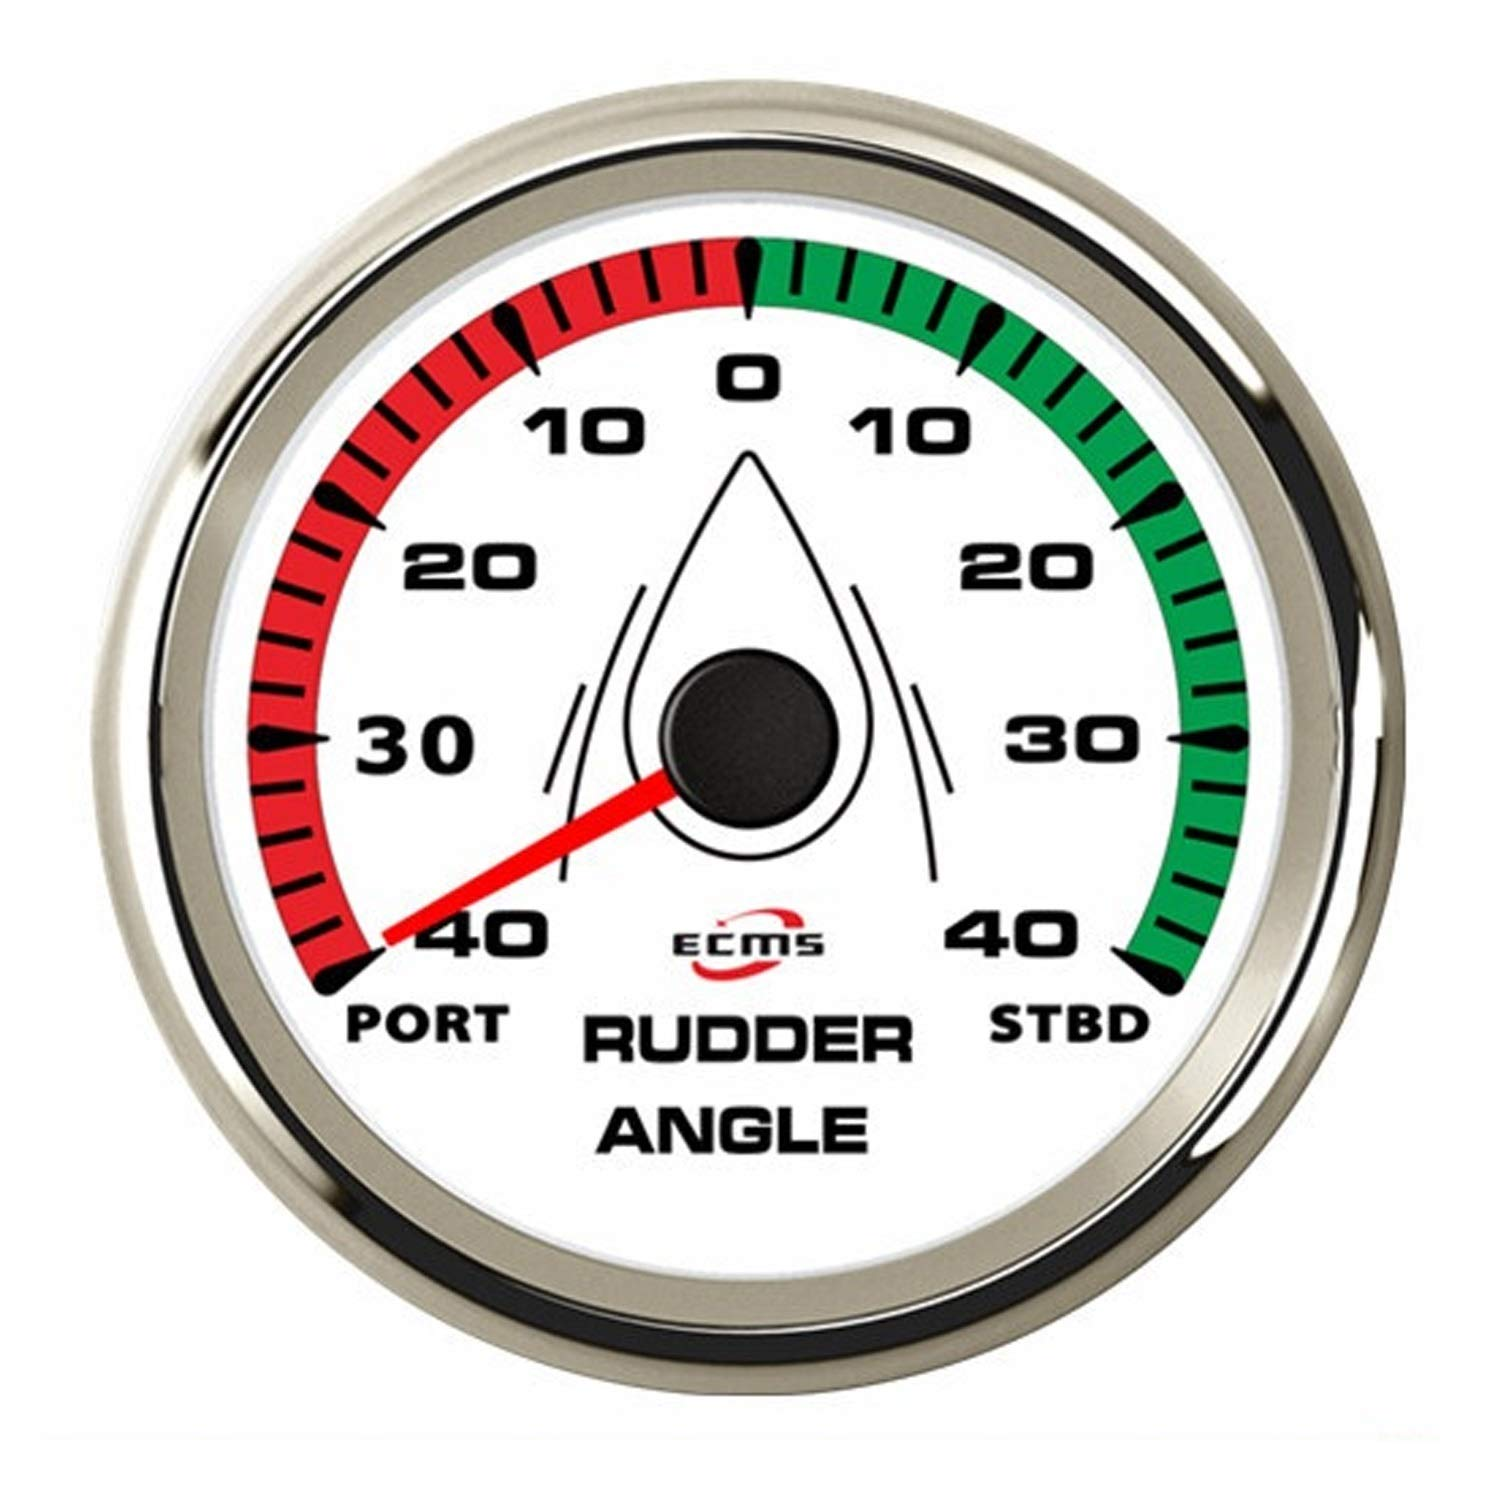 JUNJIAGAO-gauge Low Power Consumption 85mm Marine Rudder Angle Indicator 0-190ohm Rudder Angle Sensor, Waterproof, Lightning-Proof by JUNJIAGAO-gauge